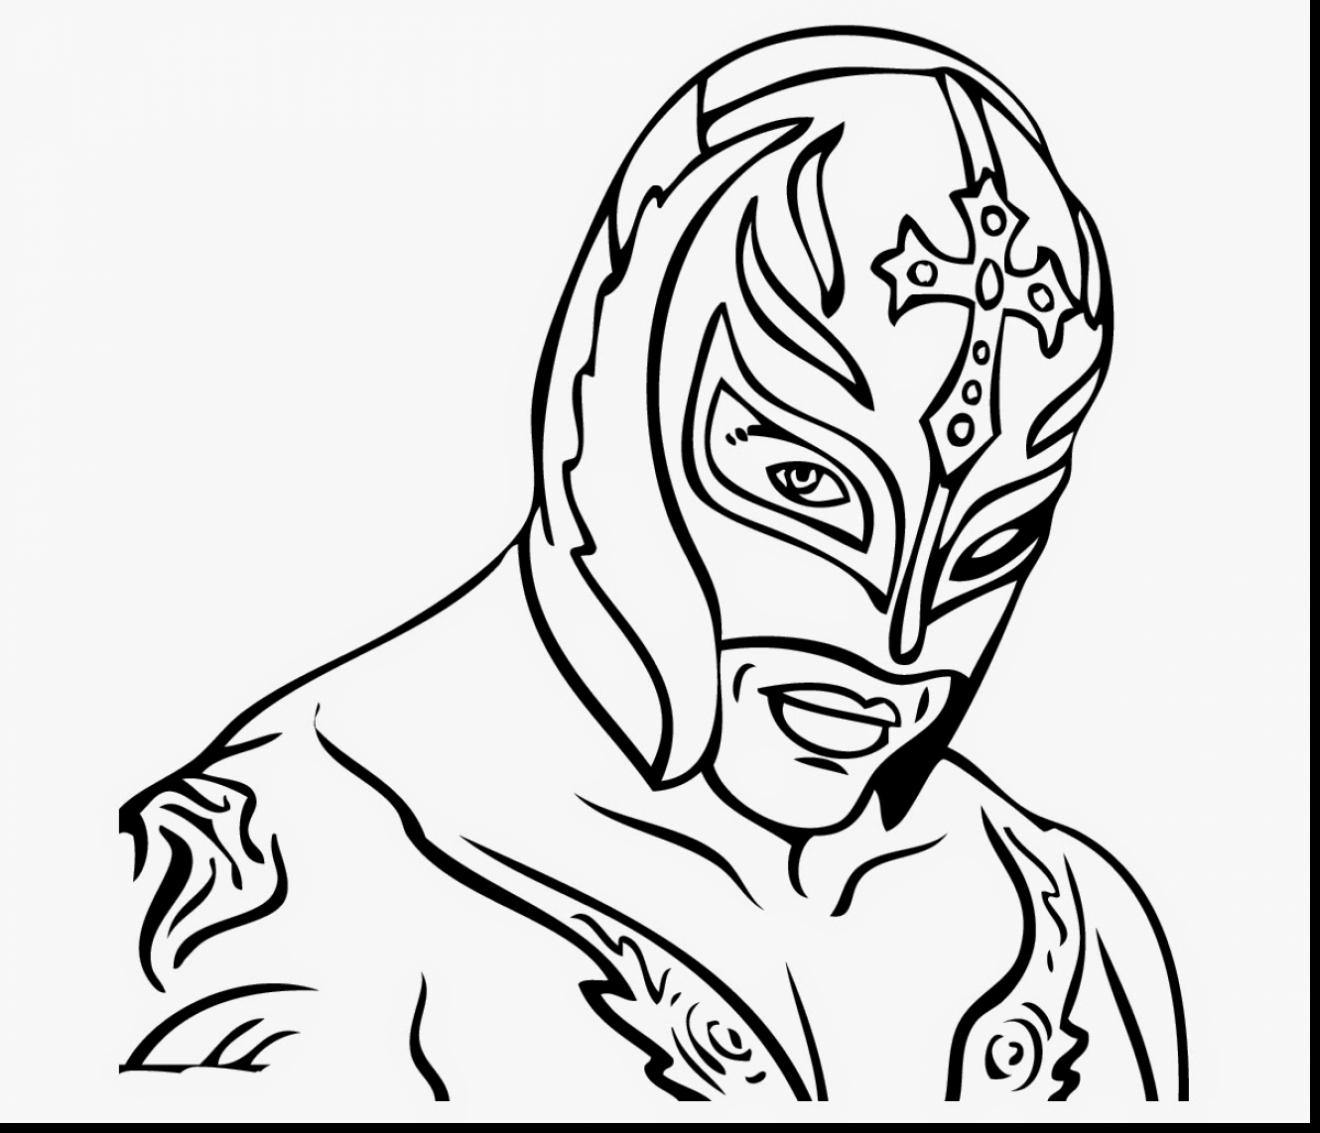 wwe rey mysterio coloring pages rey mysterio mask drawing at getdrawings free download coloring rey pages mysterio wwe